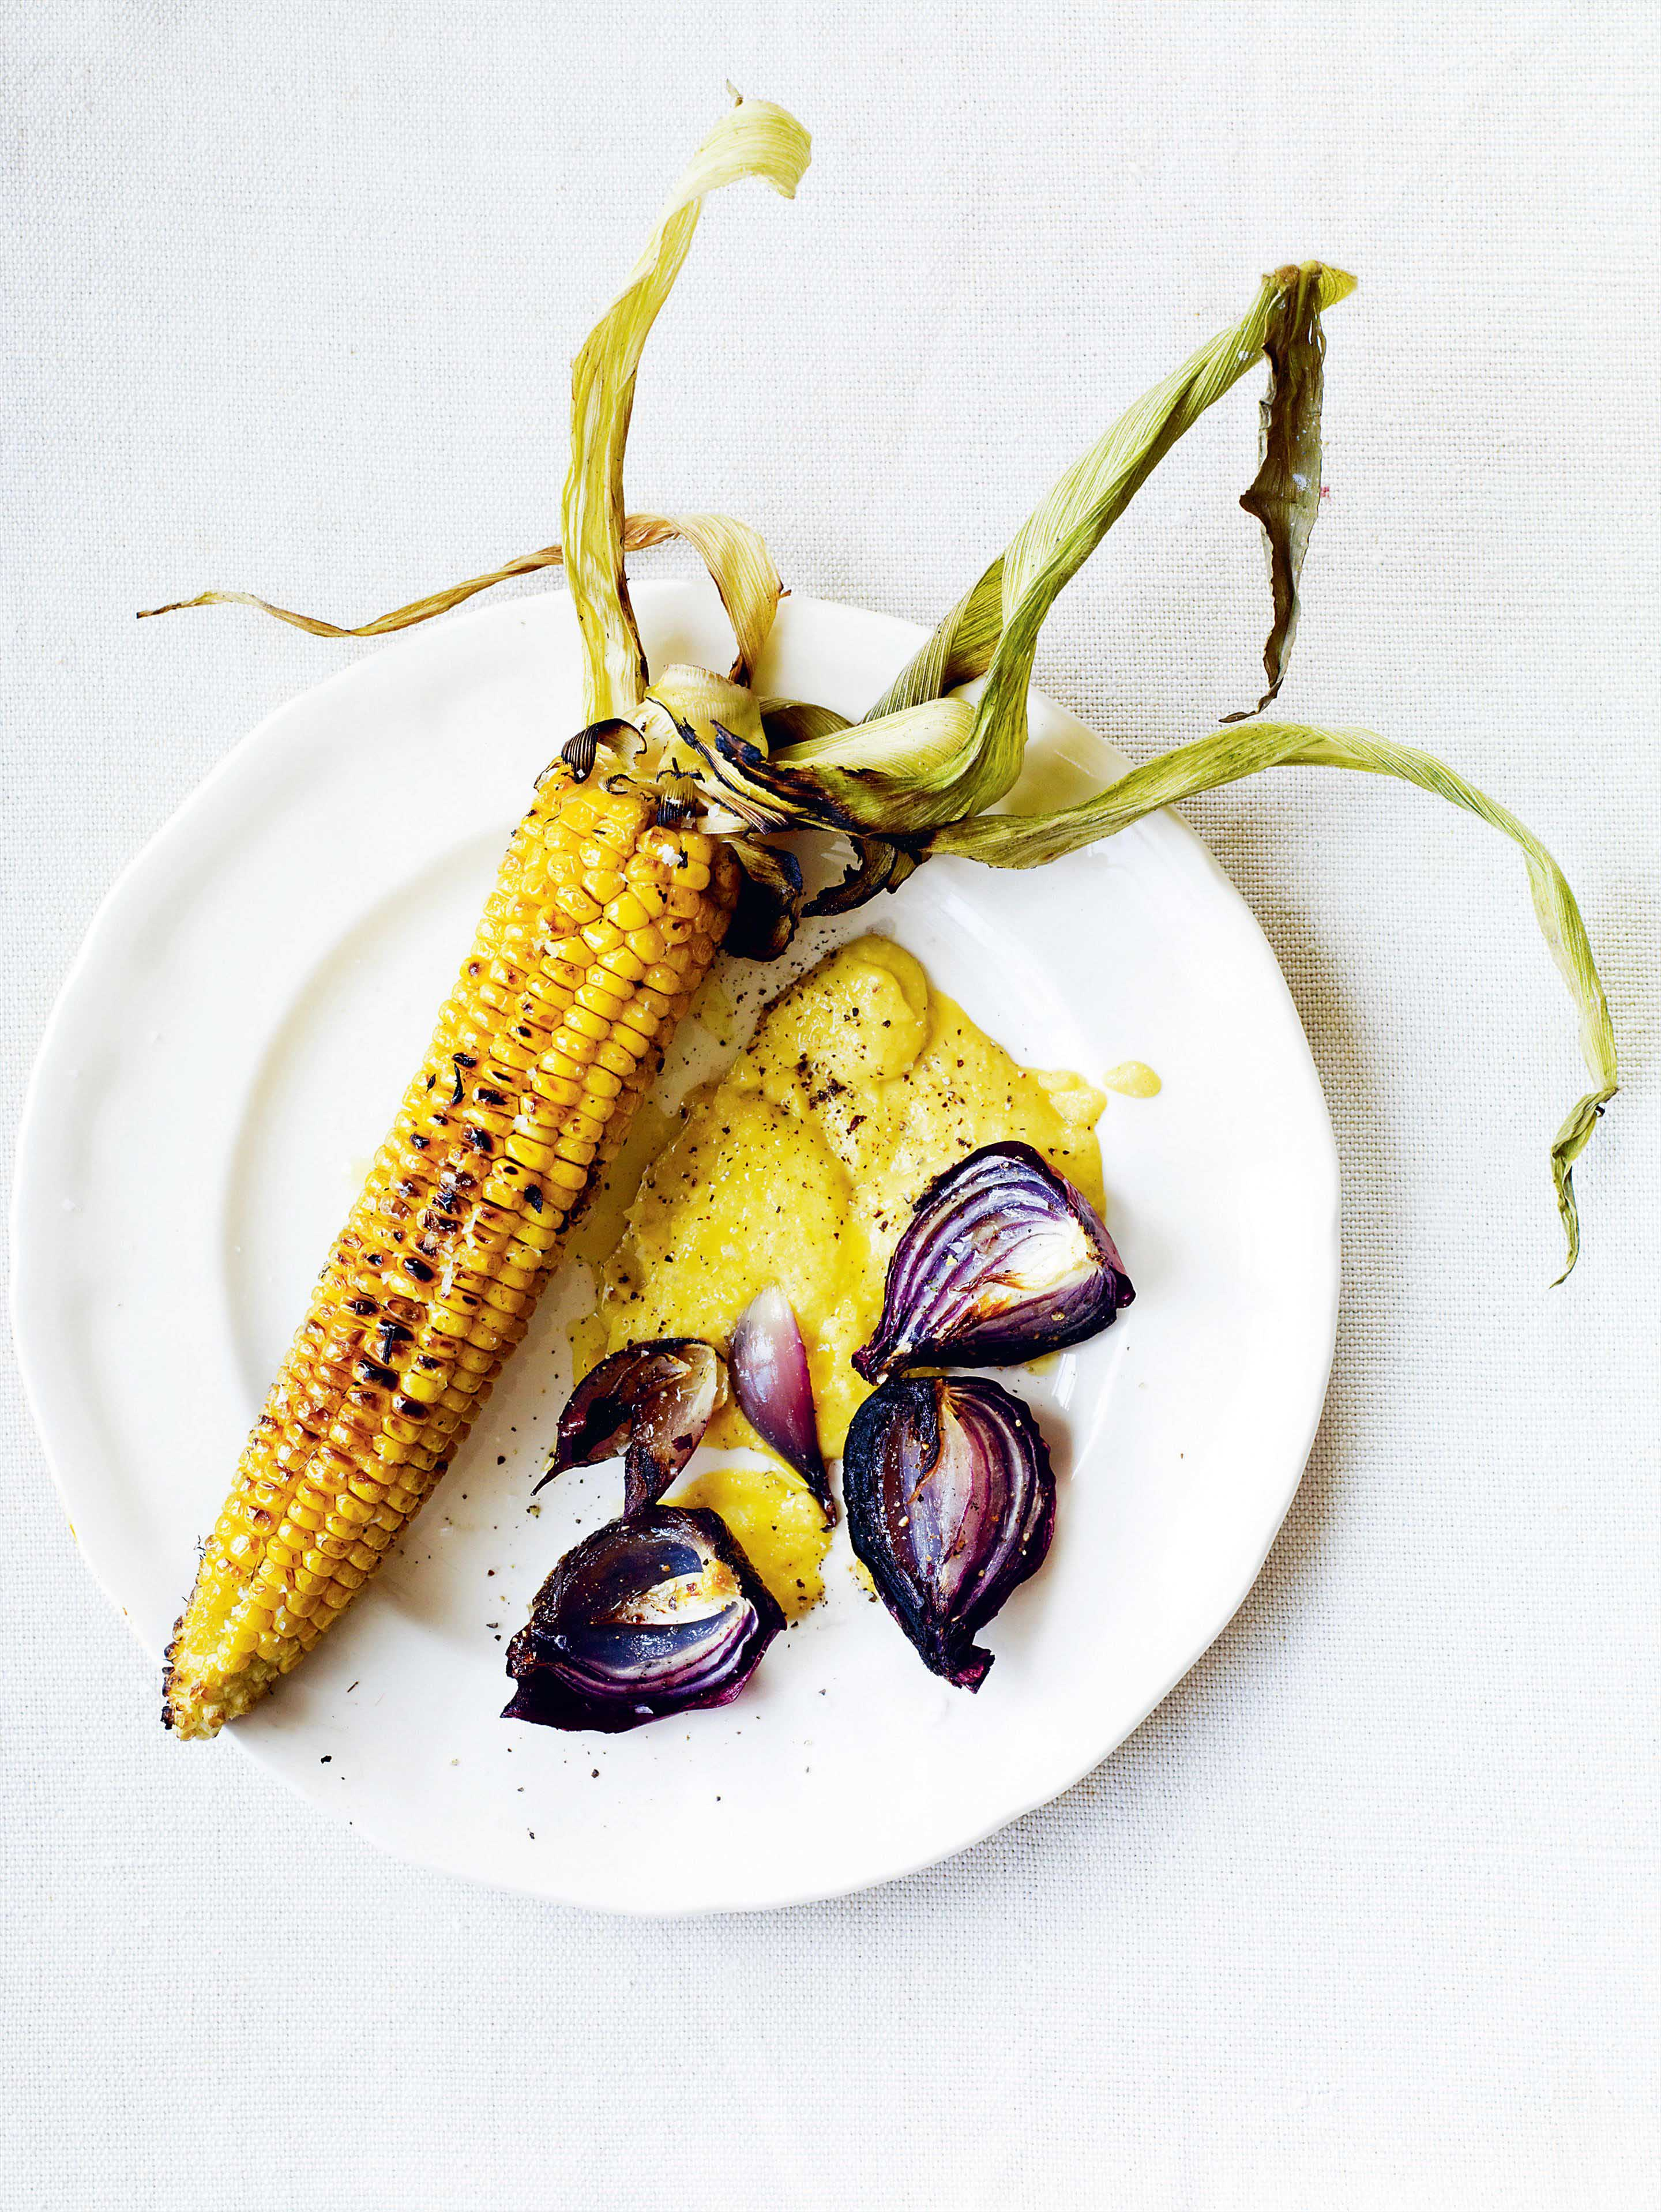 Barbecued corn & red onions with corn purée